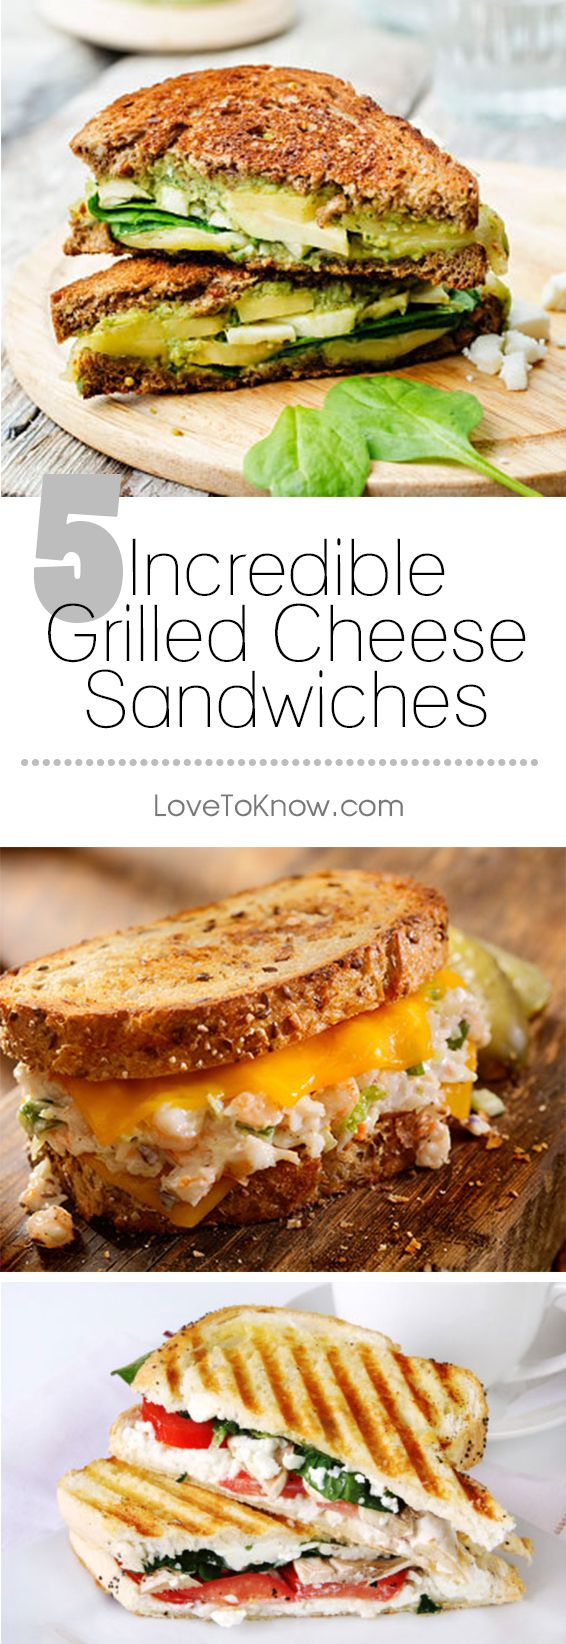 If you love the taste of grilled cheese but are tired of eating the same sandwich day after day, you're in luck. With so many incredible unique grilled cheese recipes available, you can eat a grilled cheese sandwich every day of the week and never be bored.